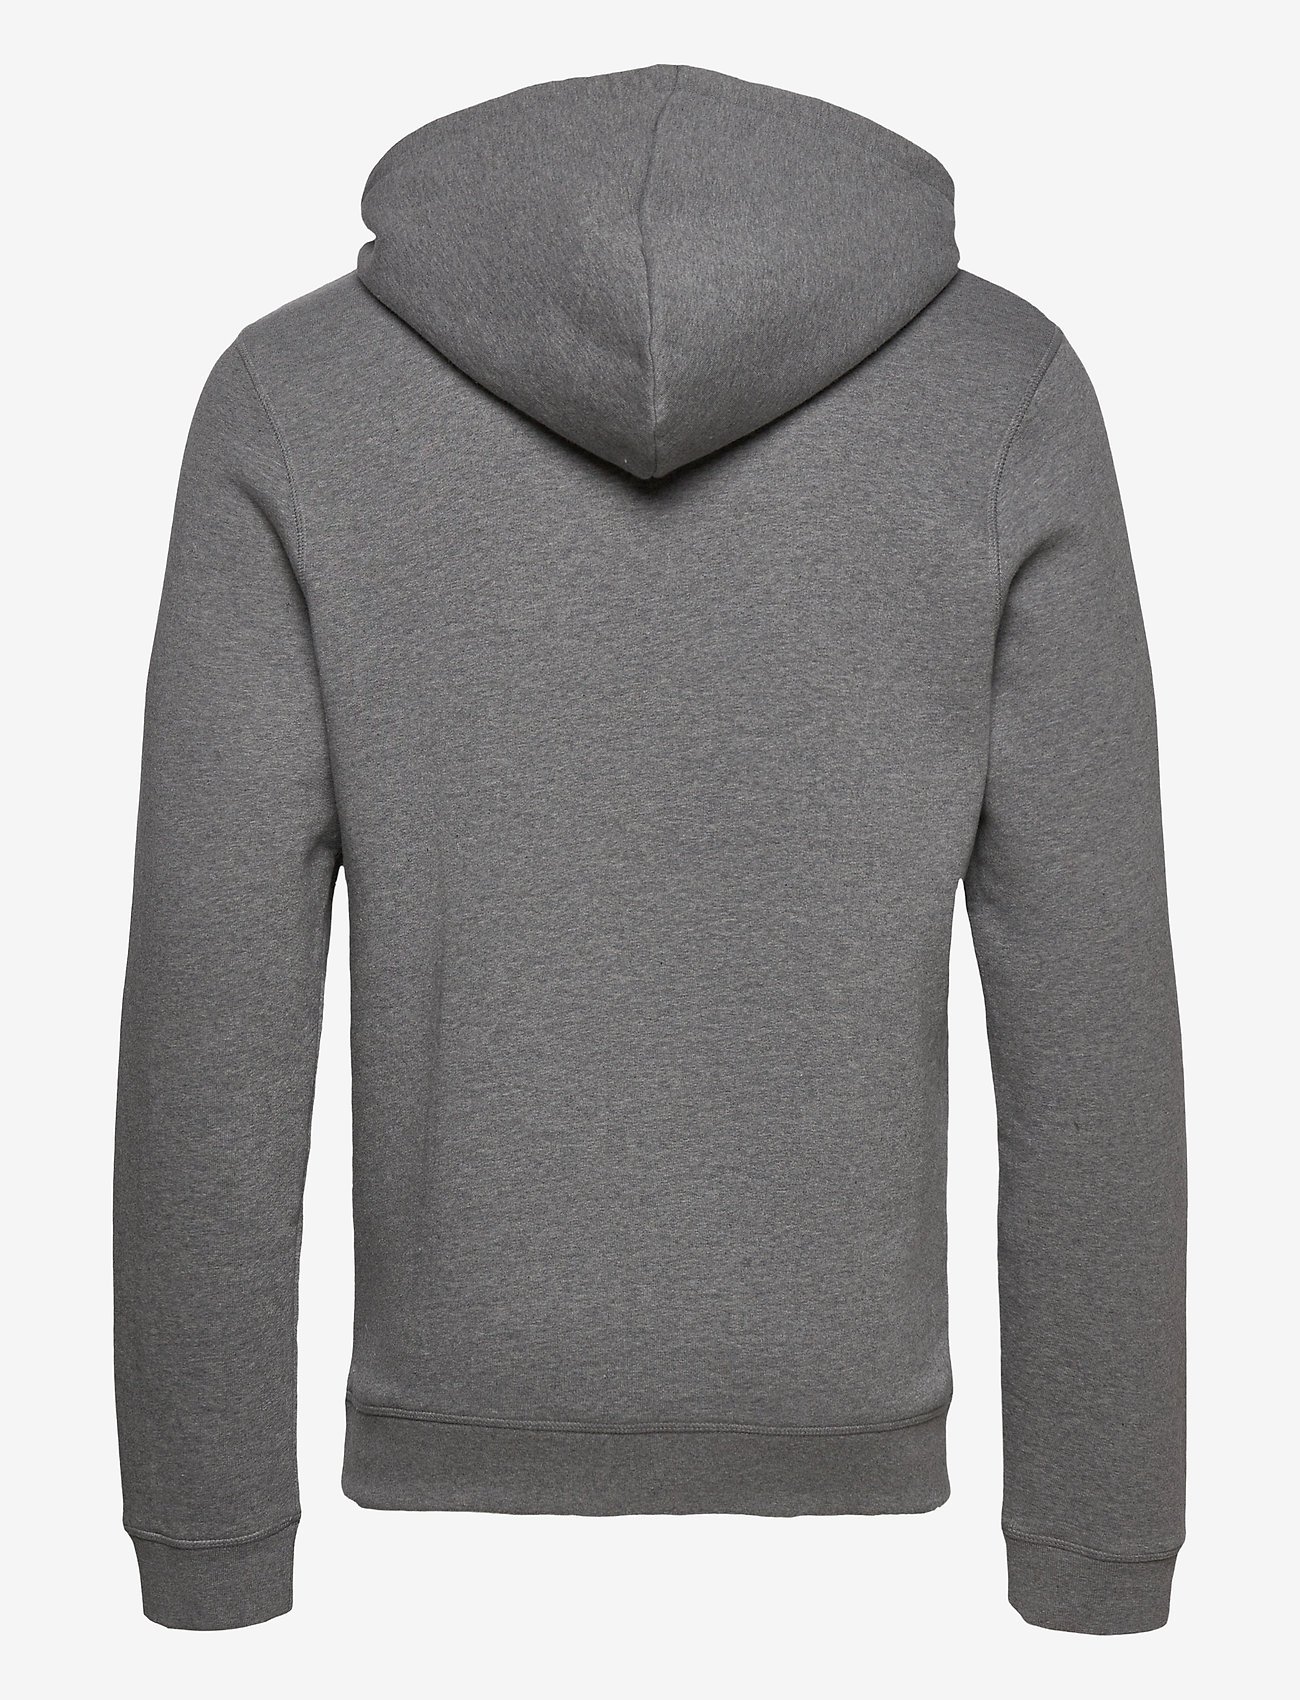 Lexington Clothing Perry Hood - Sweatshirts GRAY MELANGE - Menn Klær